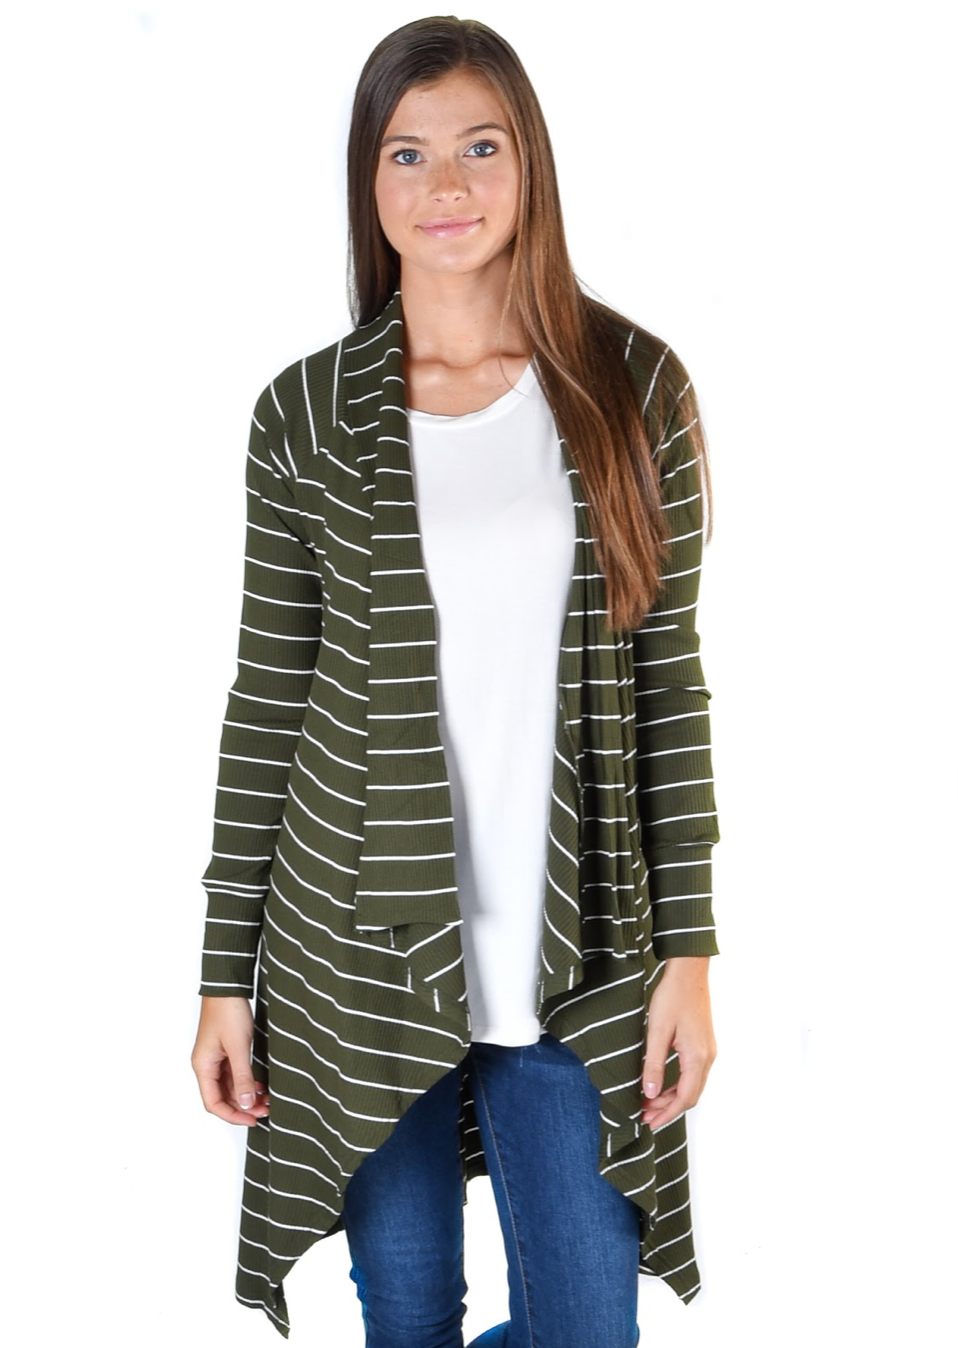 Olive Lux Stripe Cardigan - Warehouse Apparel